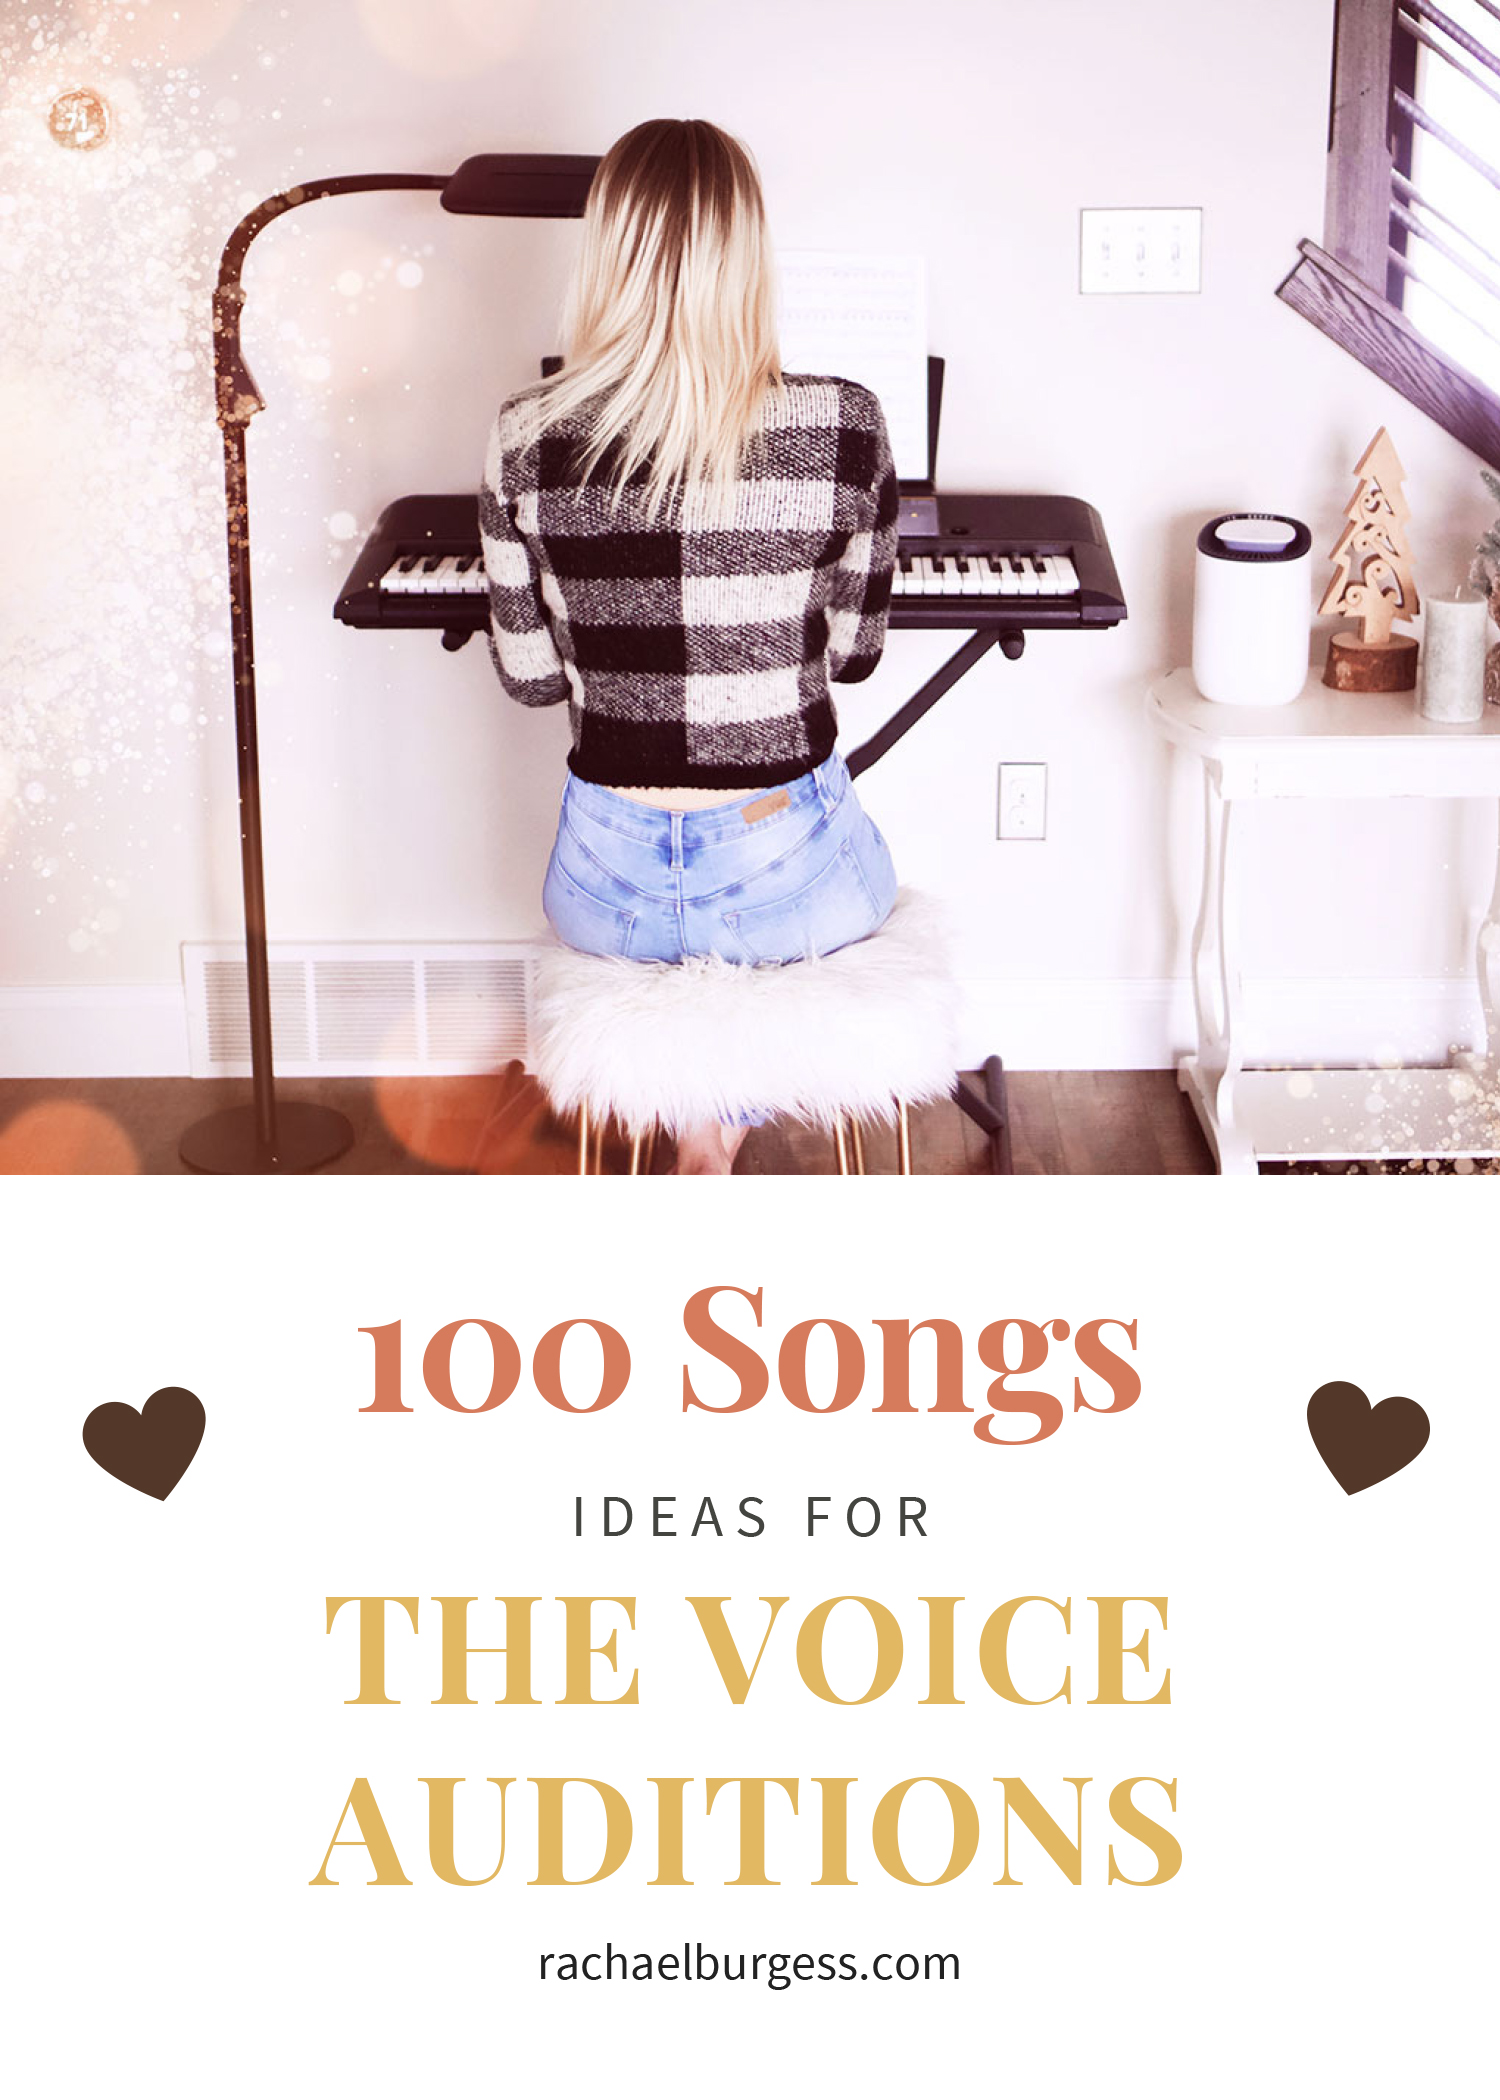 100 Audition Song Ideas For The Voice, X Factor or Ameircan